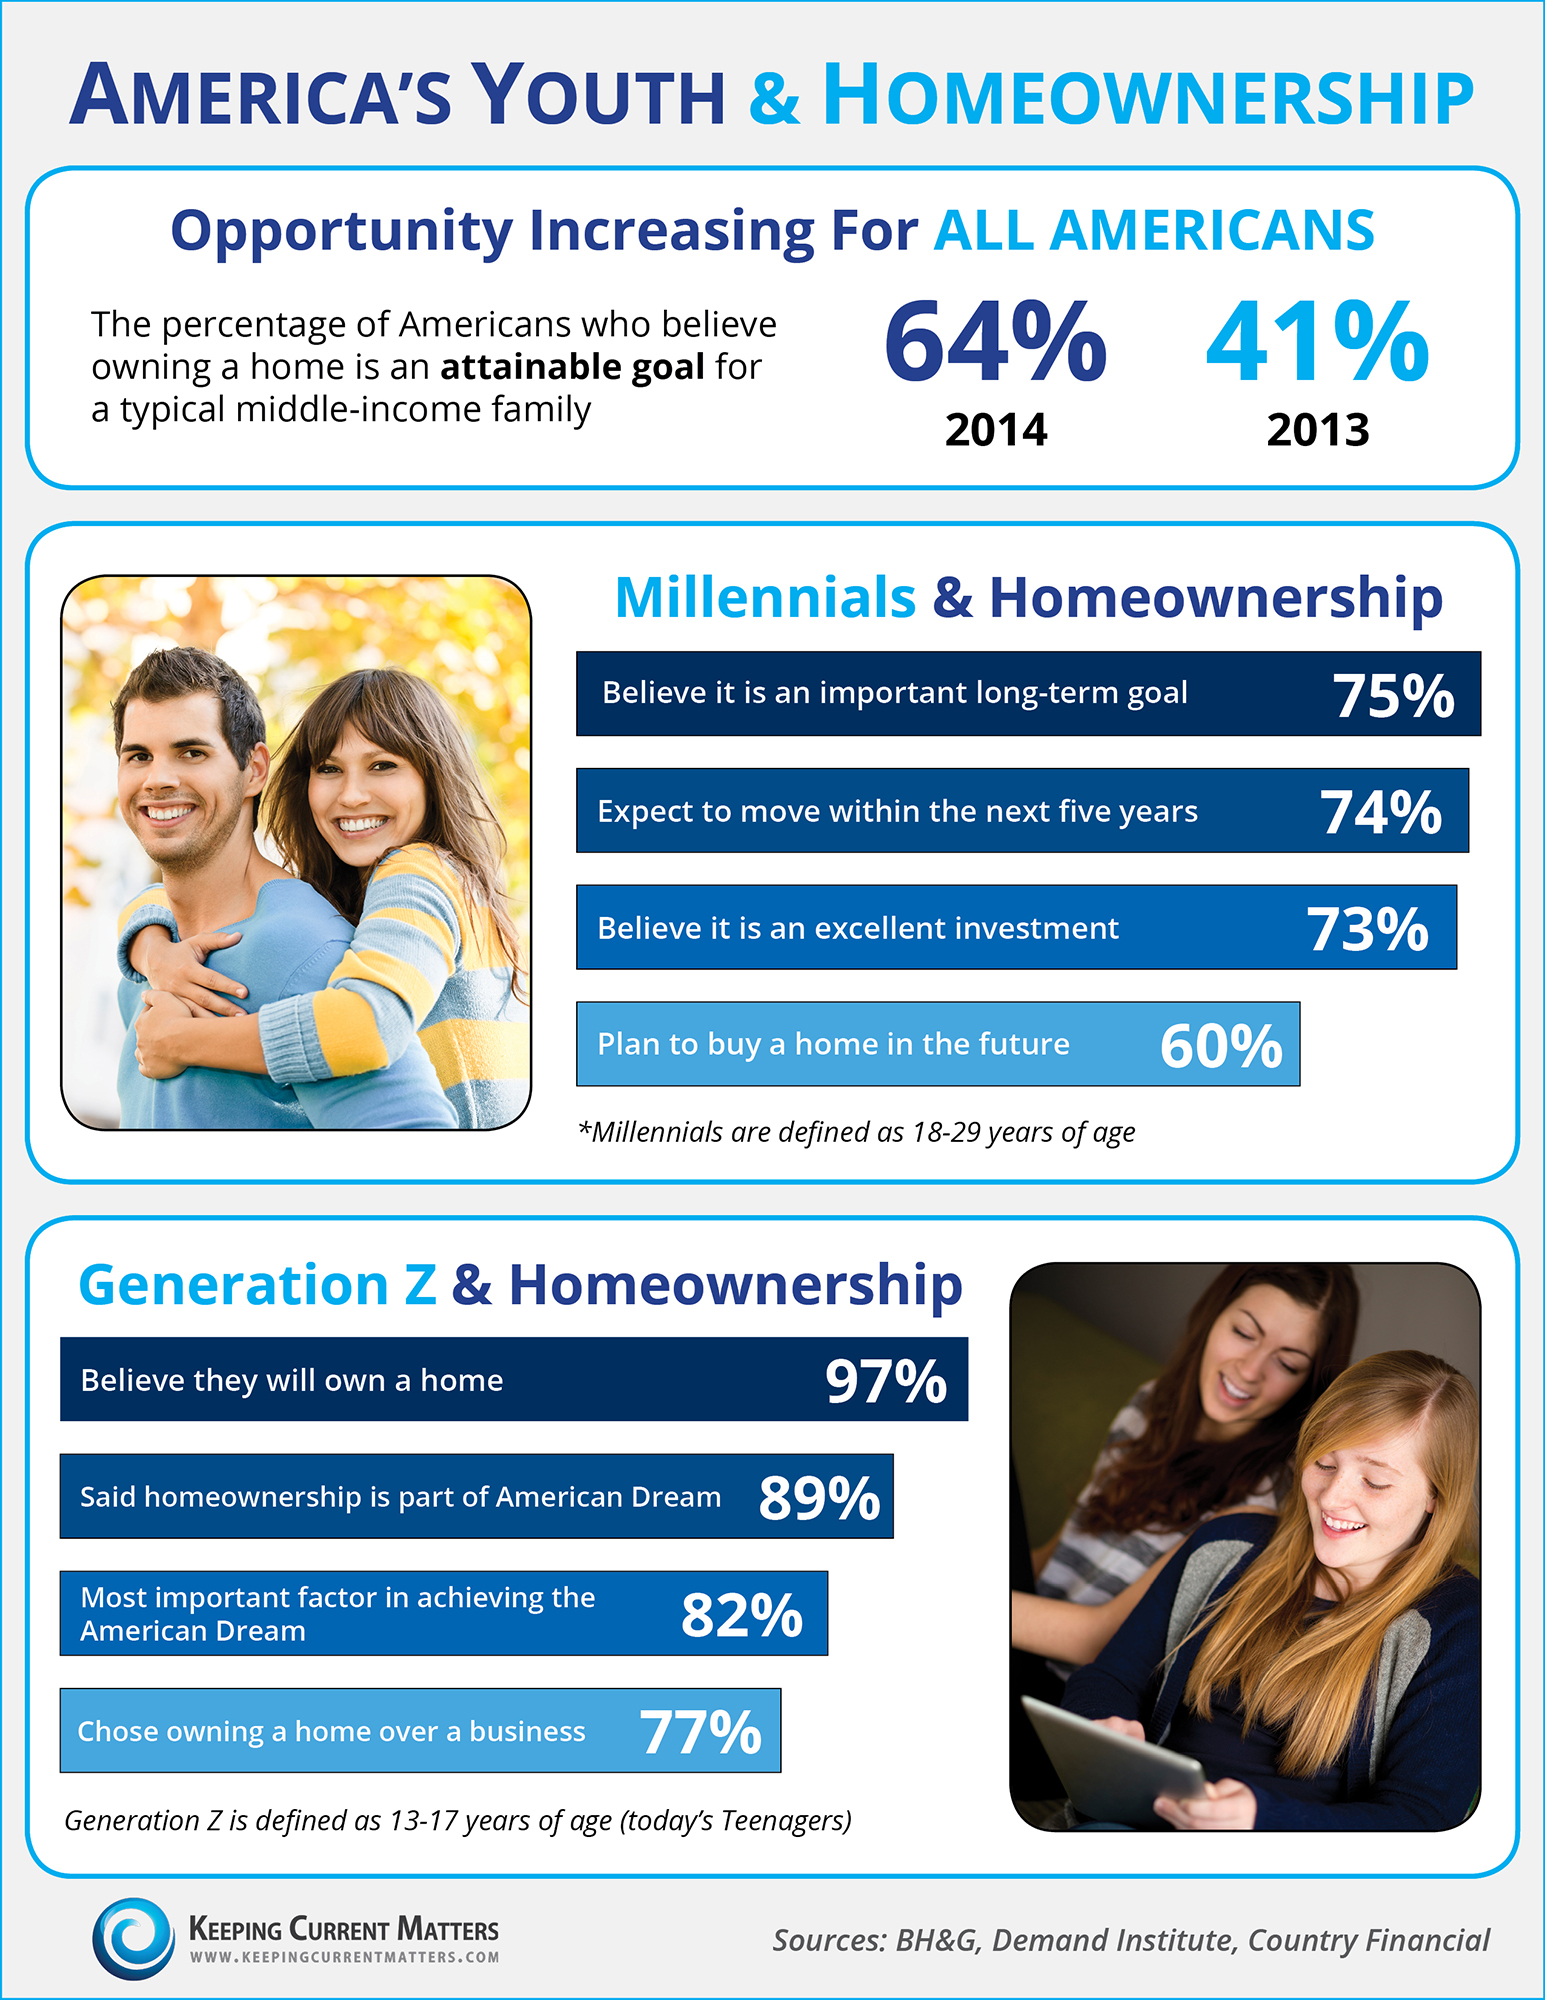 America's Youth & Homeownership [INFOGRAPHIC] | Simplifying The Market